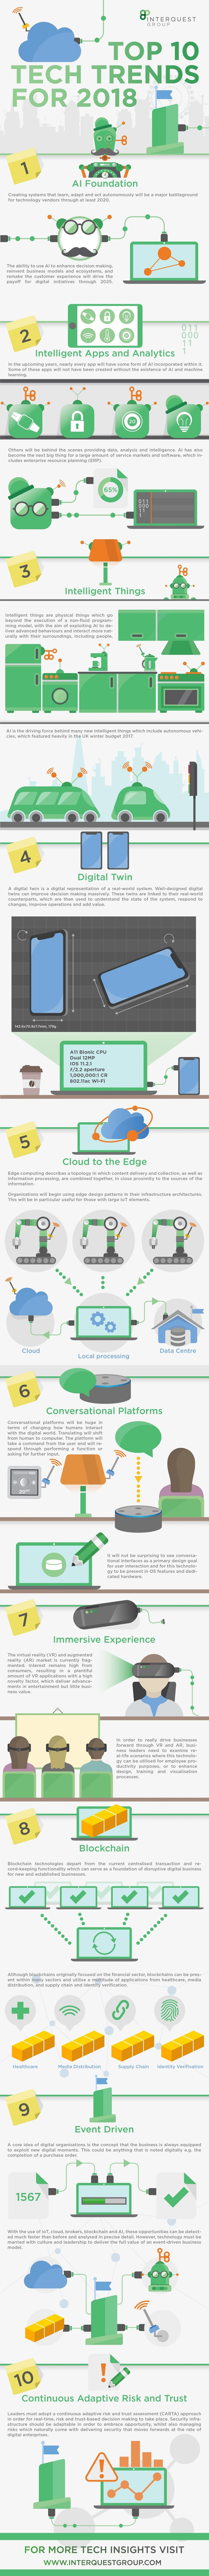 Top 10 Strategic Tech Trends 2018 - #infographic